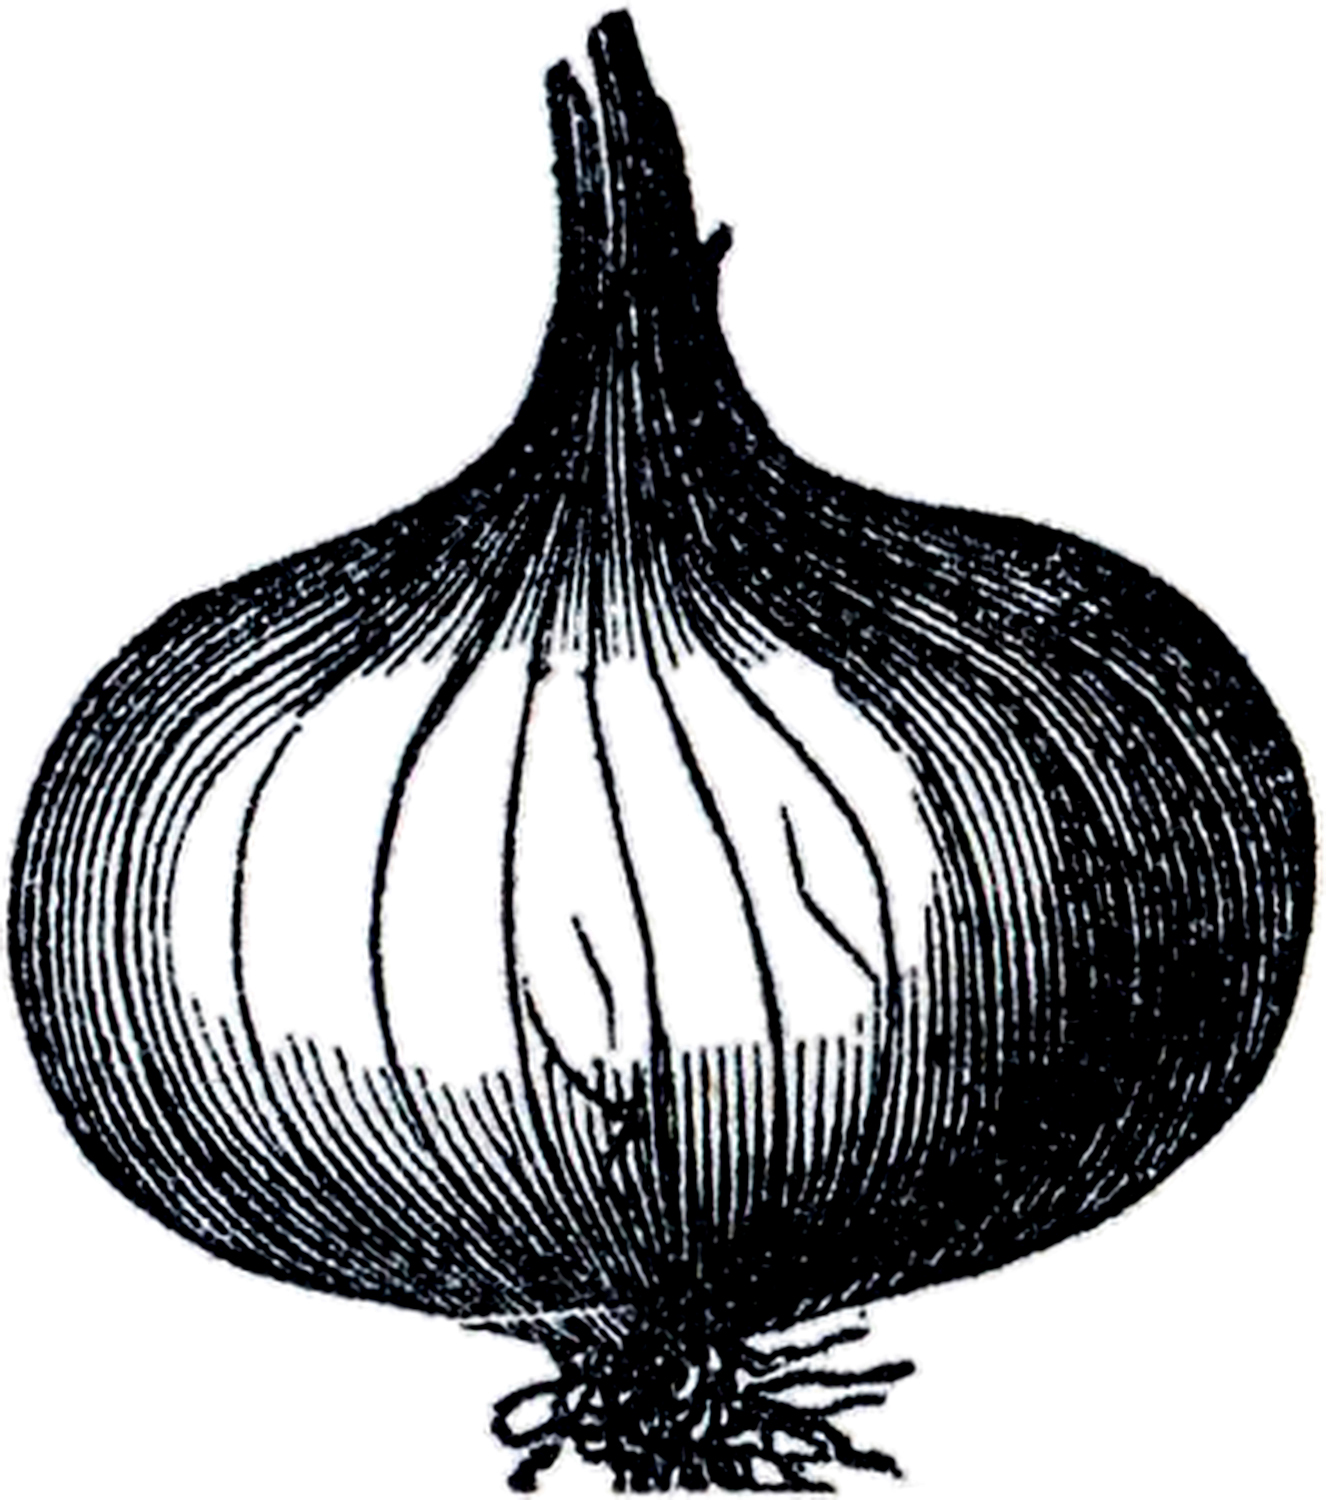 Onion clipart black and white 7 » Clipart Station